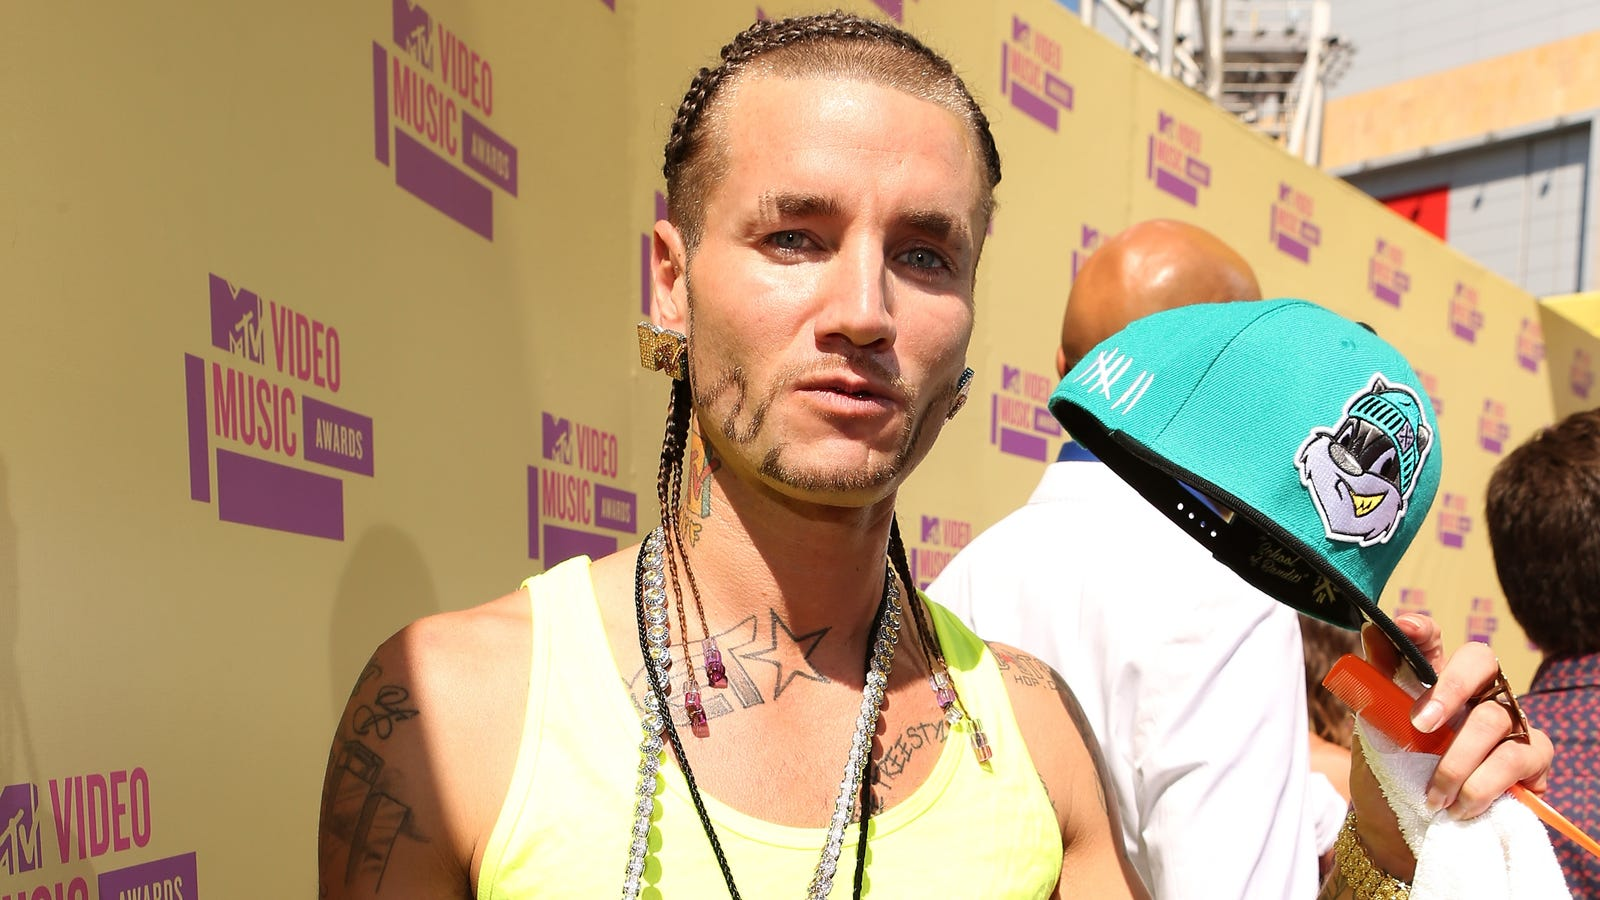 A Second Woman, Then 17, Accuses Riff Raff of Sexual Misconduct